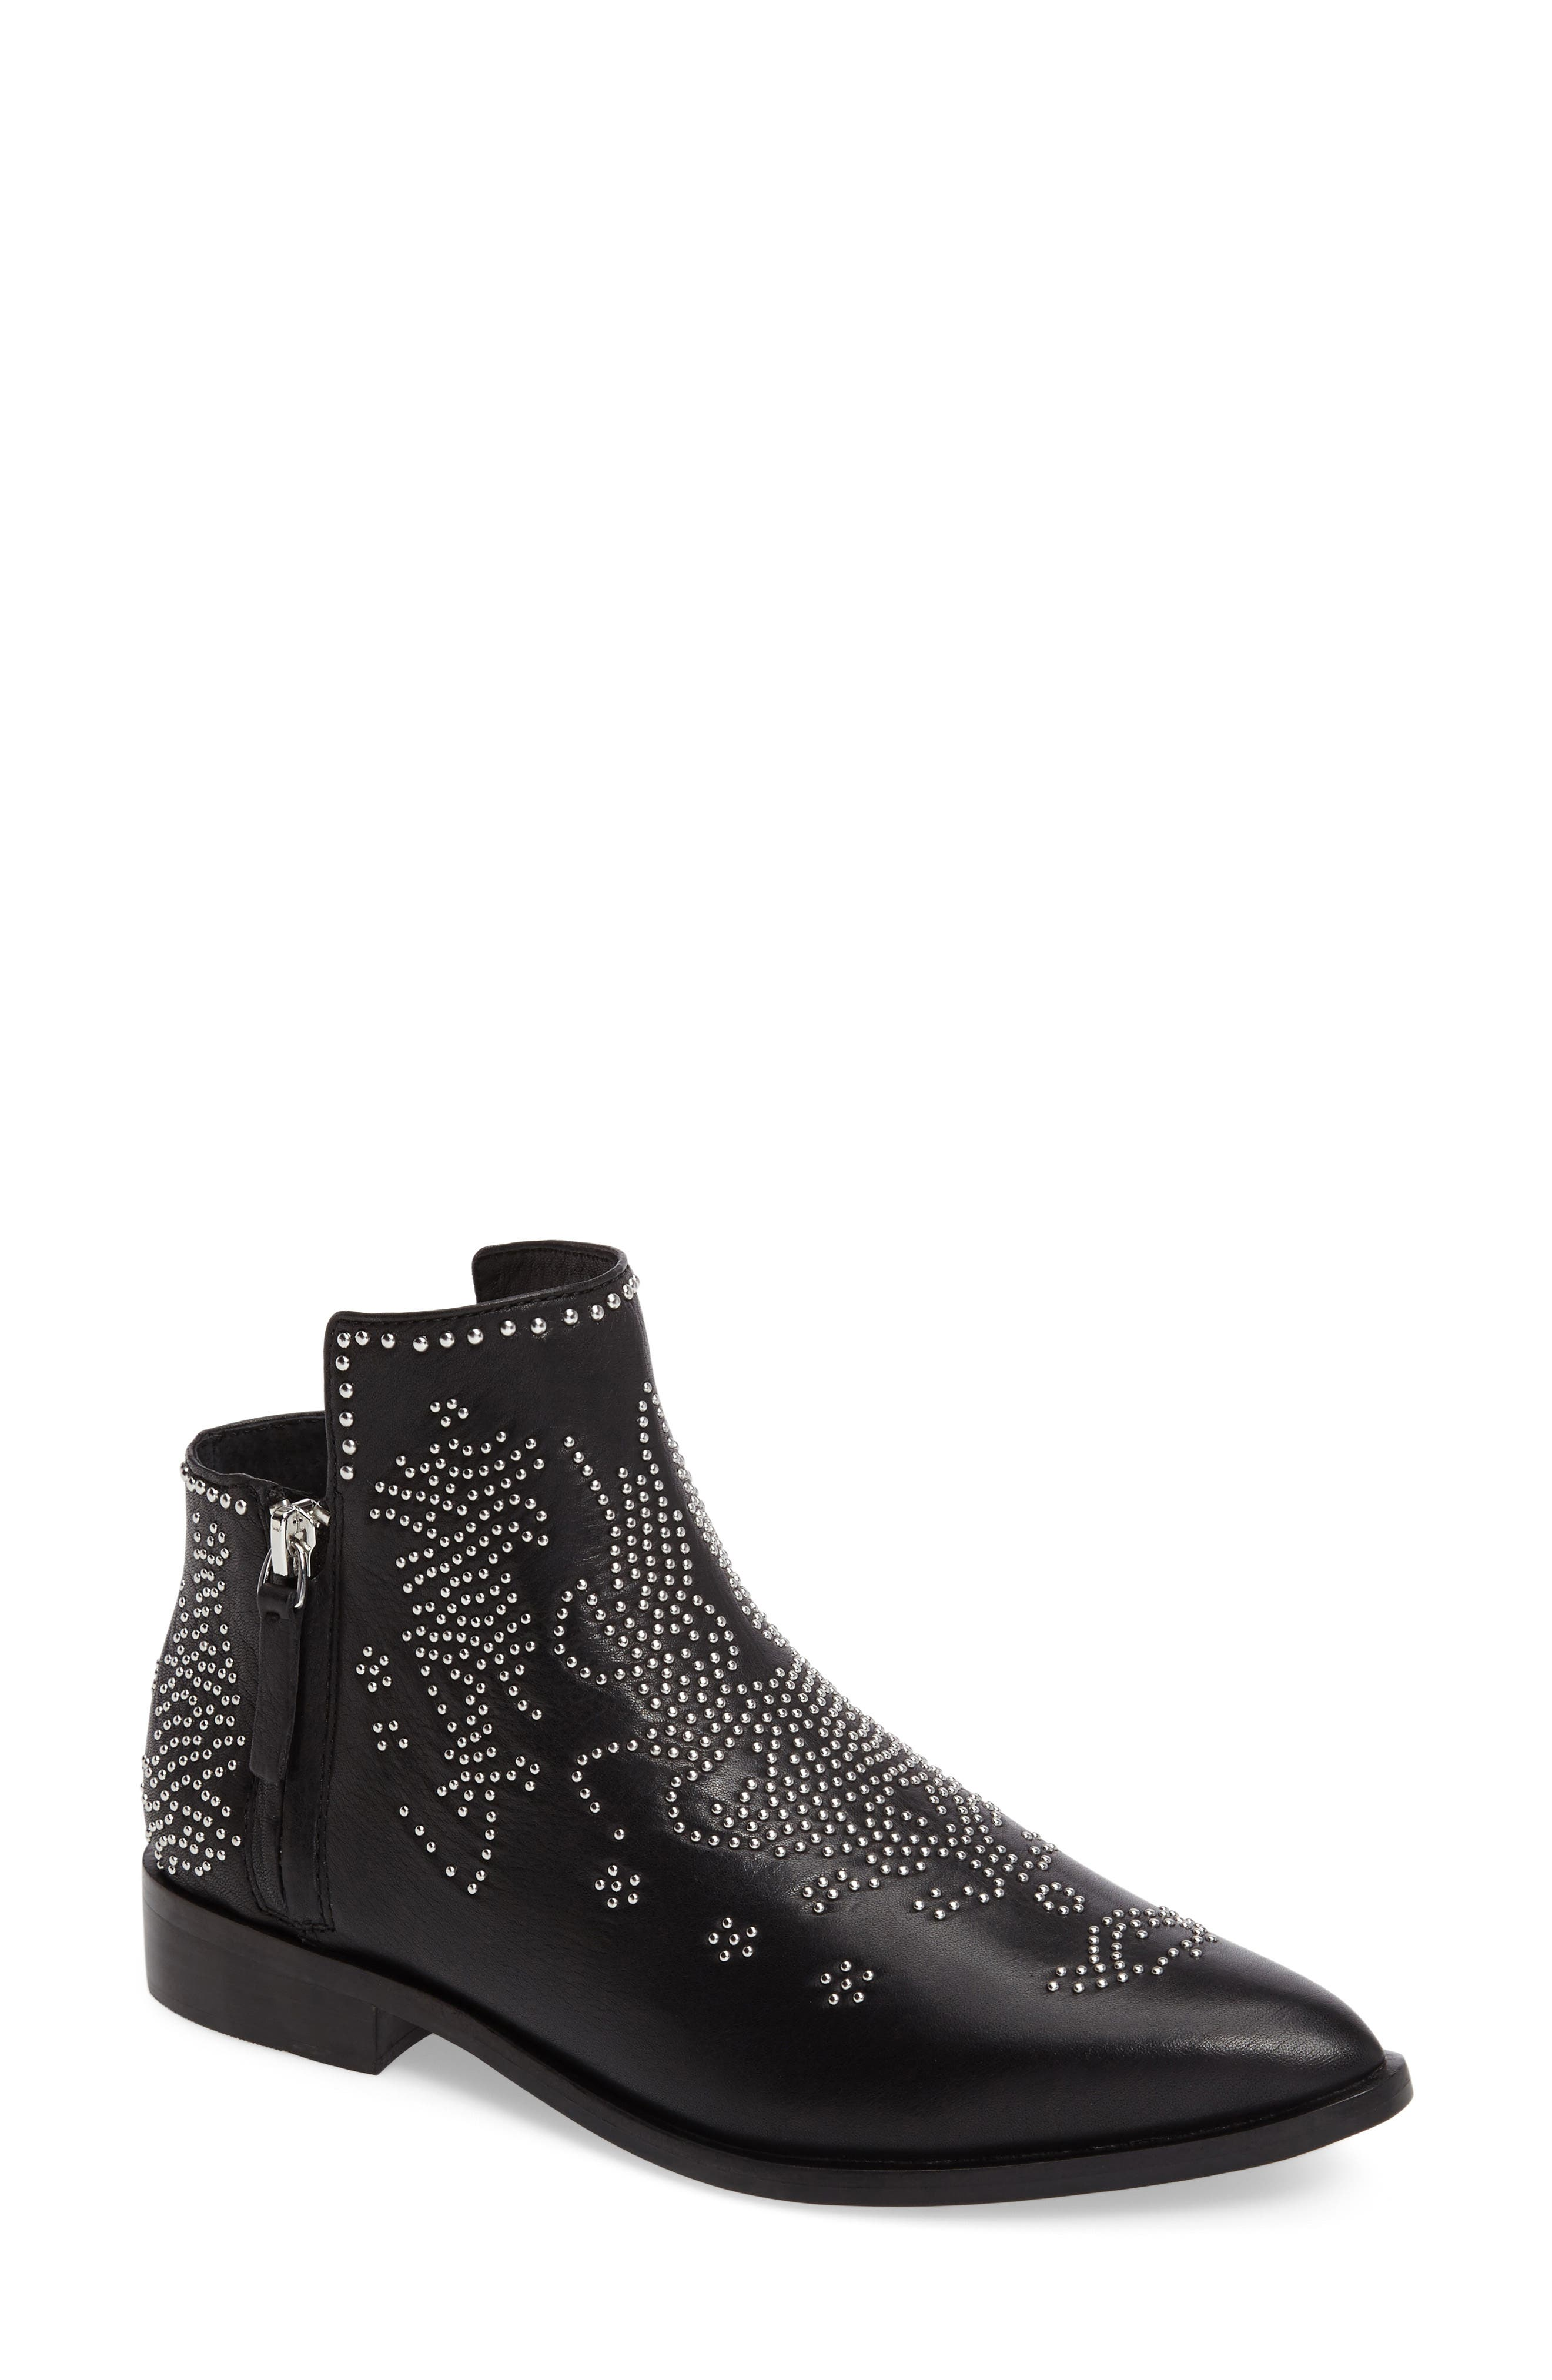 Callback2 Studded Bootie,                         Main,                         color, 001